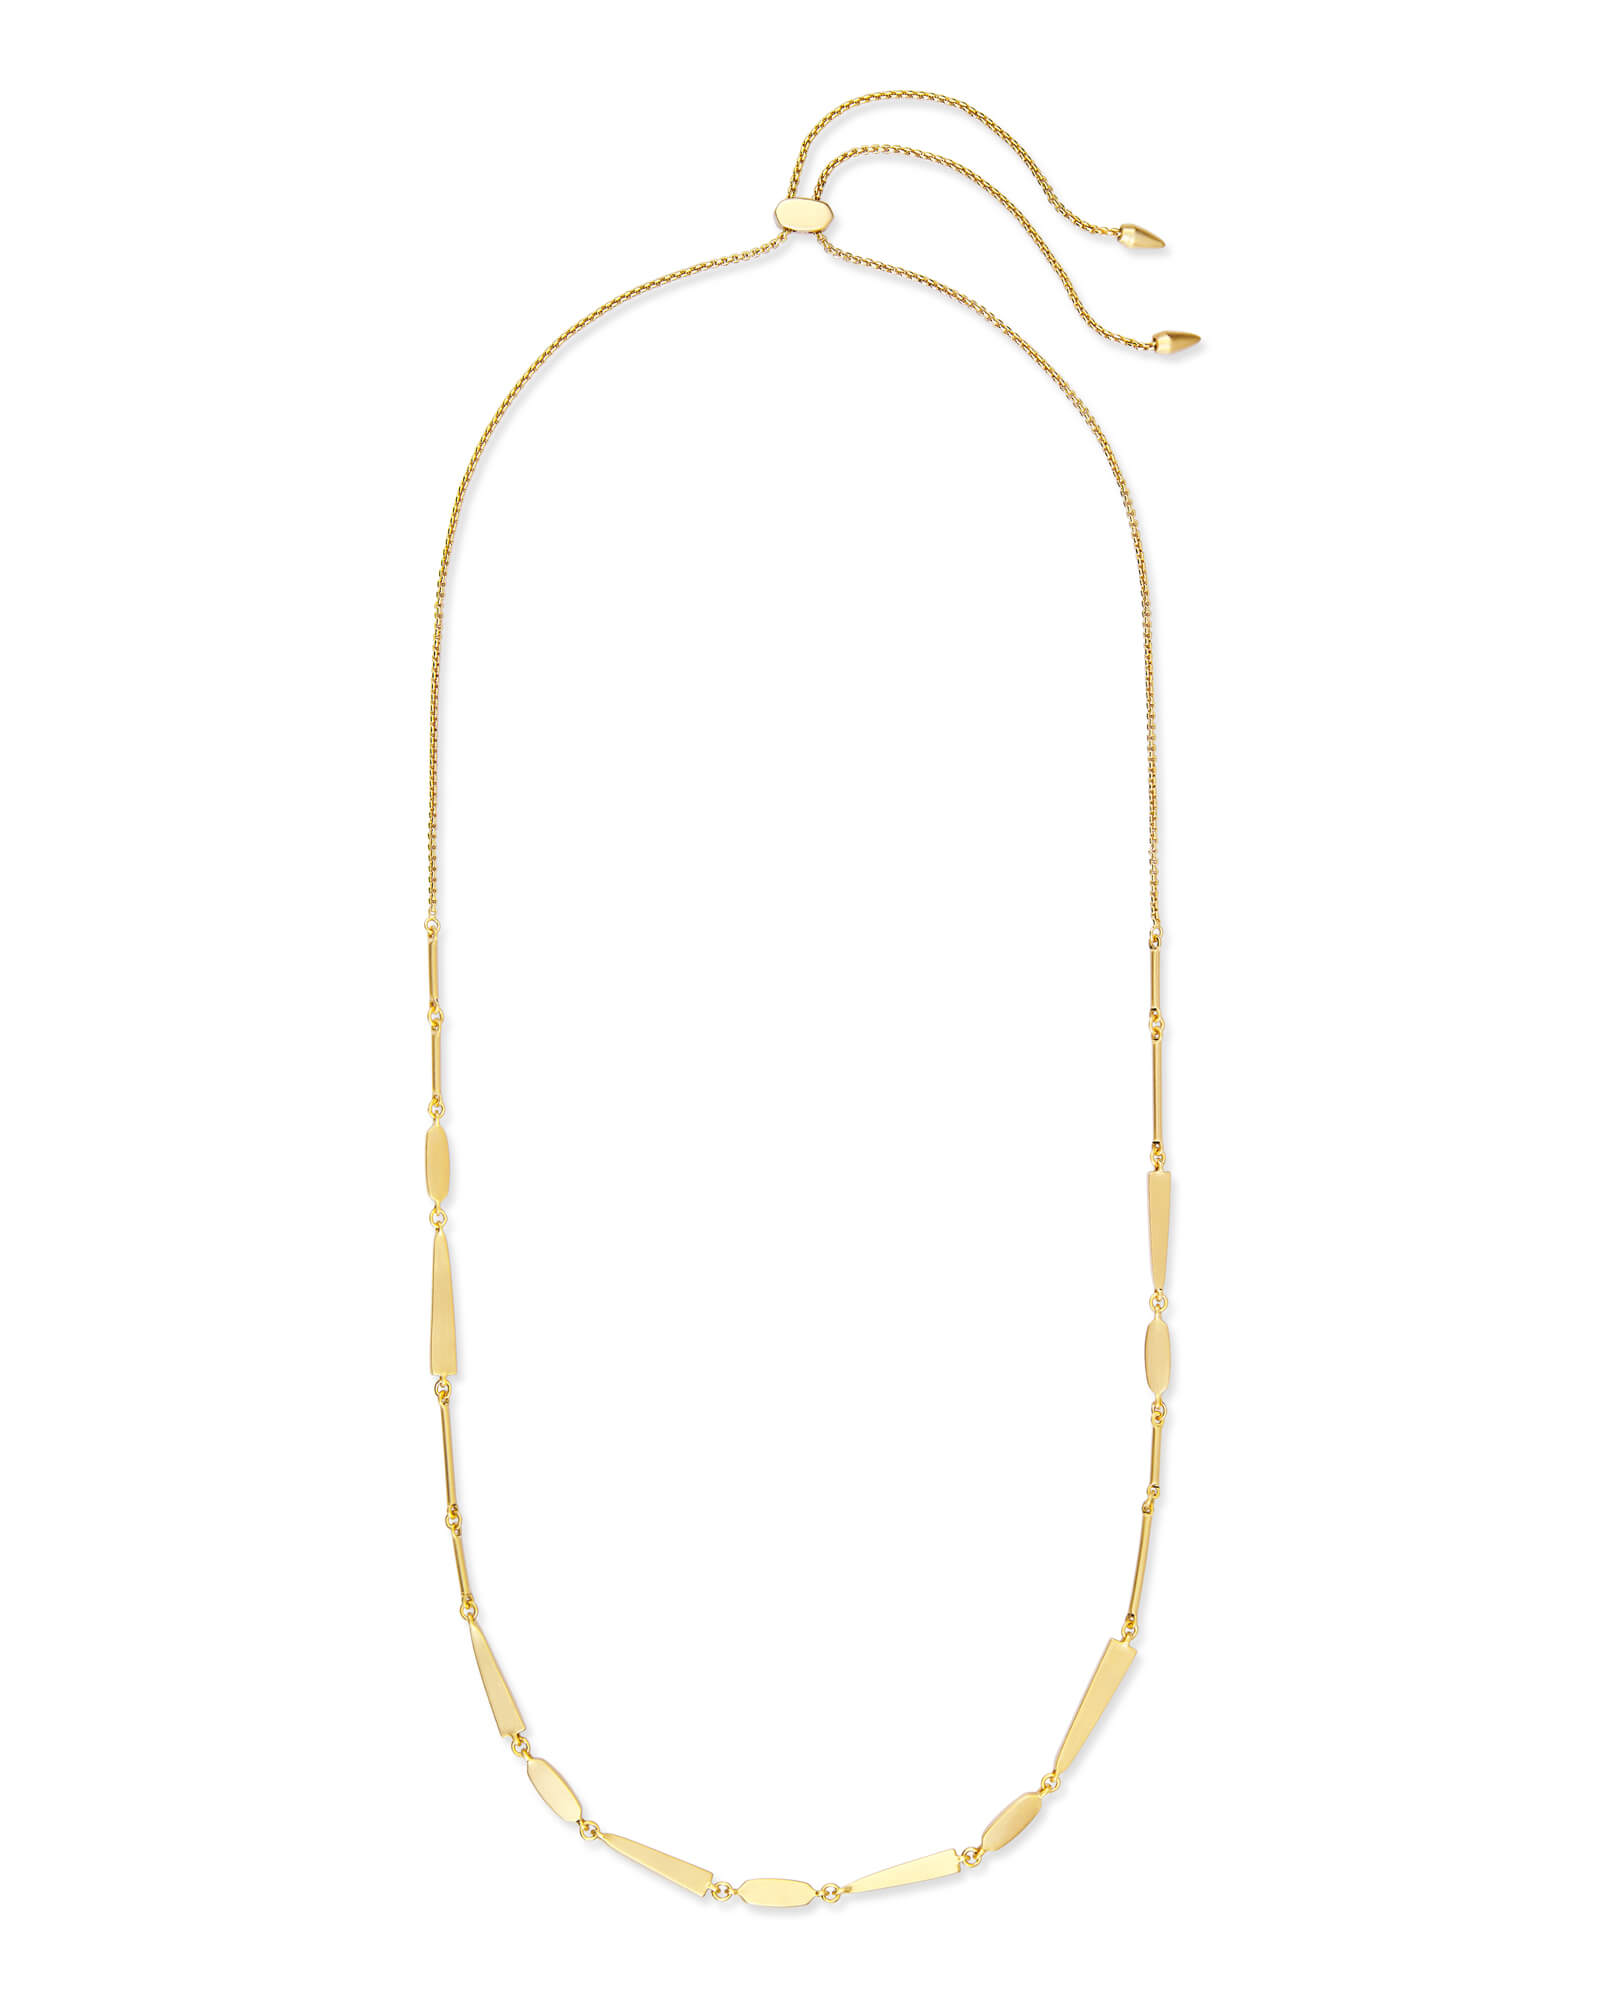 Ava Choker Necklace in Gold